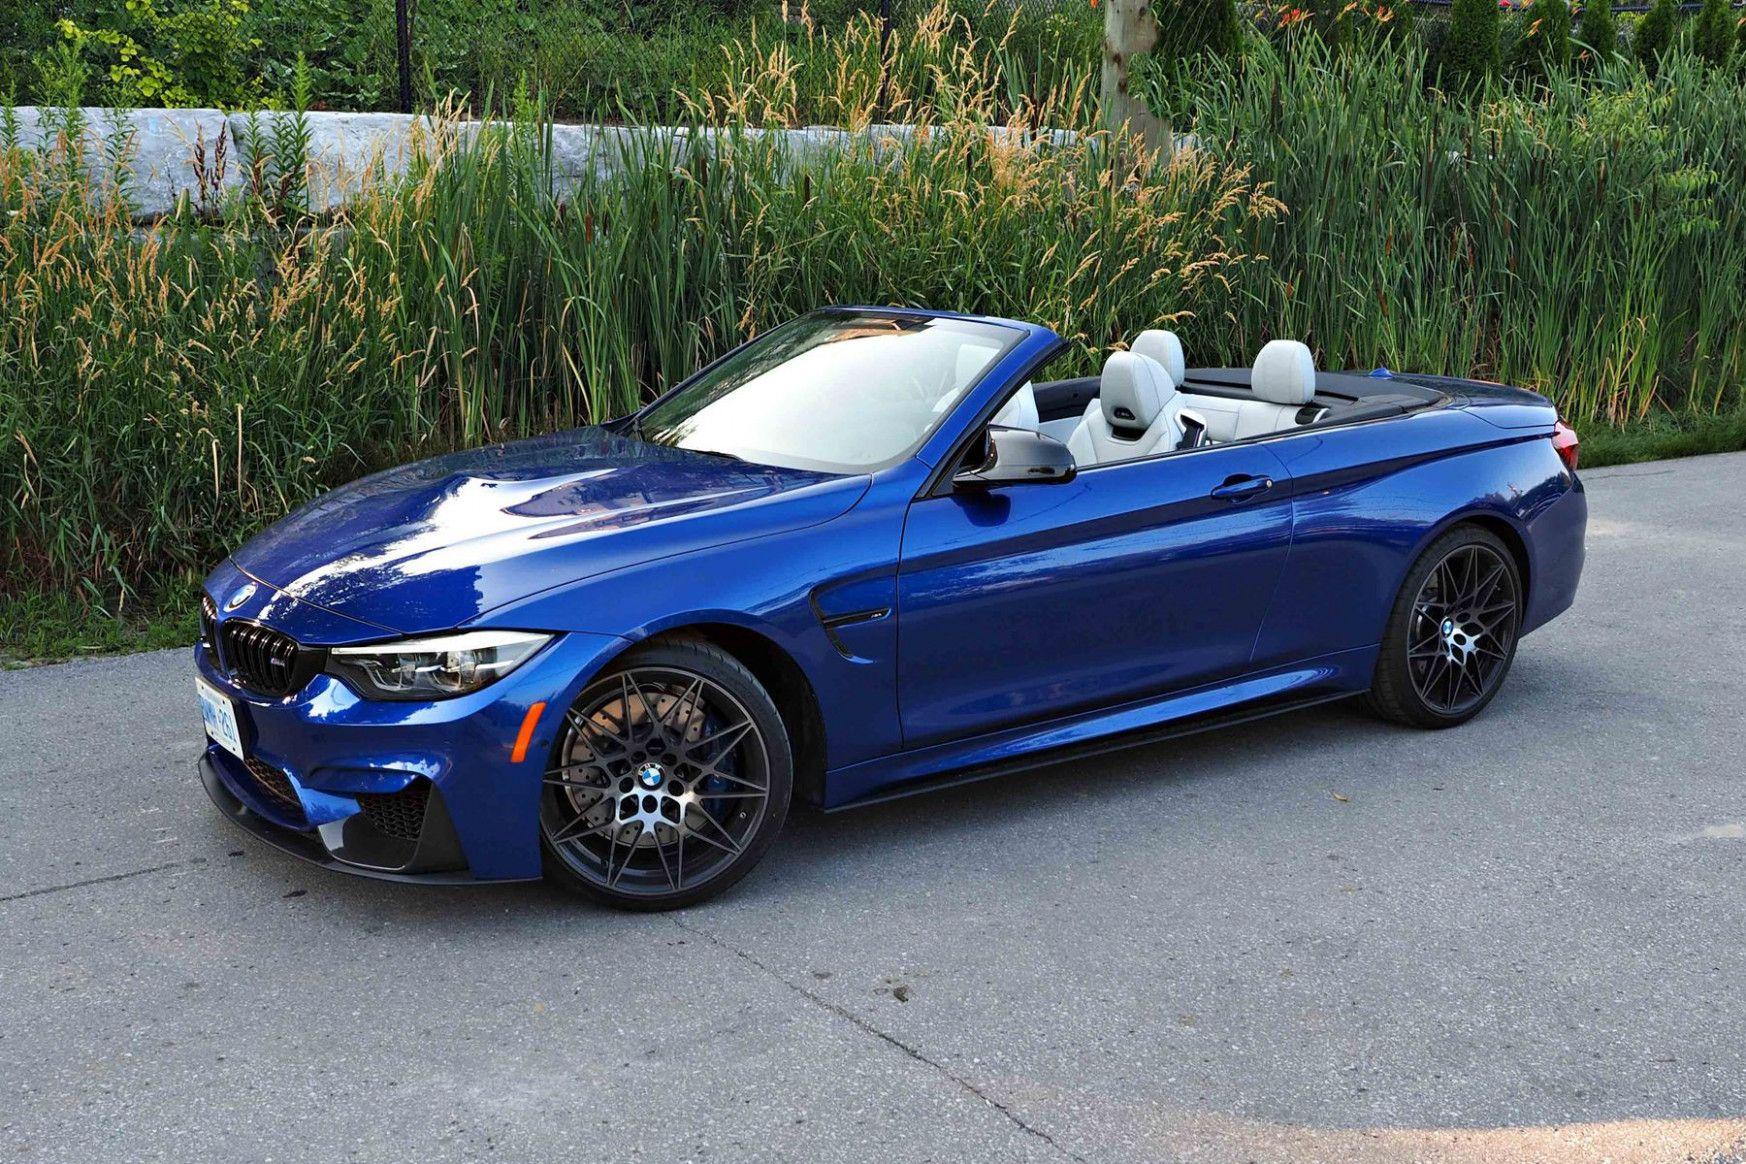 9 Wallpaper 2020 Bmw Convertible For Sale In 2020 Bmw Convertible Bmw Bmw M4